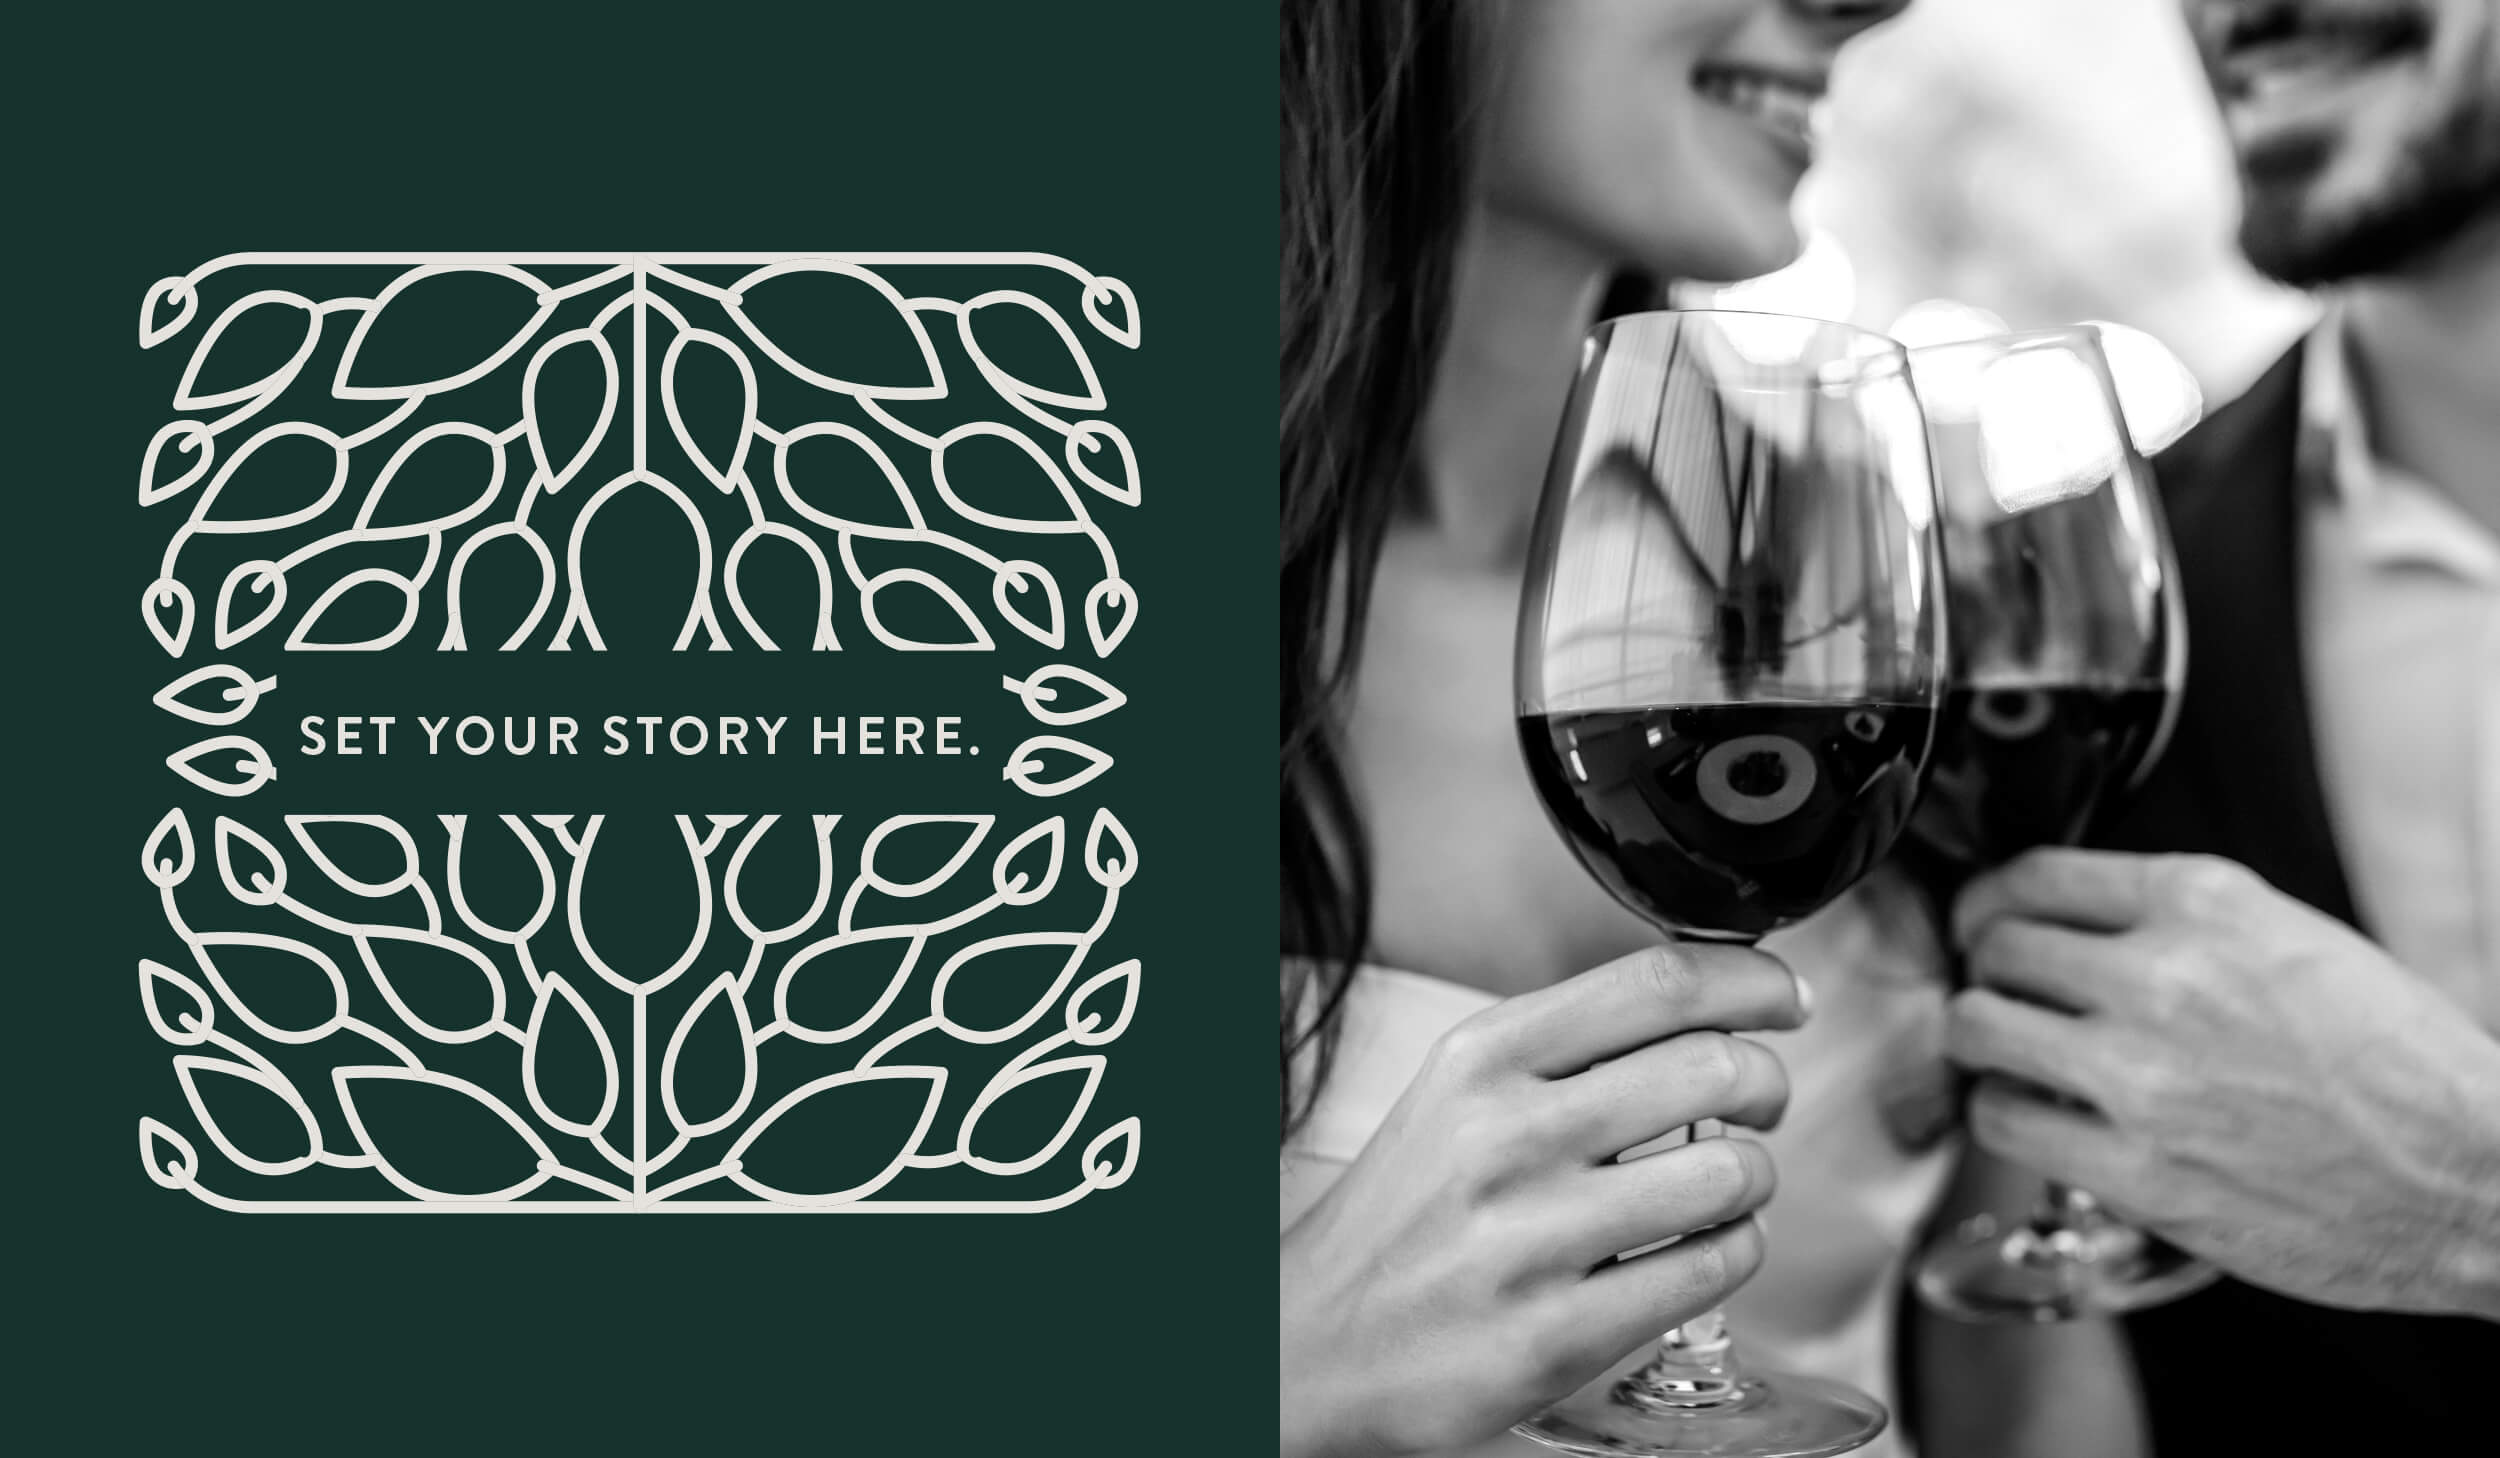 split image, on the left is a dark green rectangle with a white leaf graphic overlay and text that reads, Set Your Story Here and on the left is a black and white photo of a man and woman clinking glasses of wine together